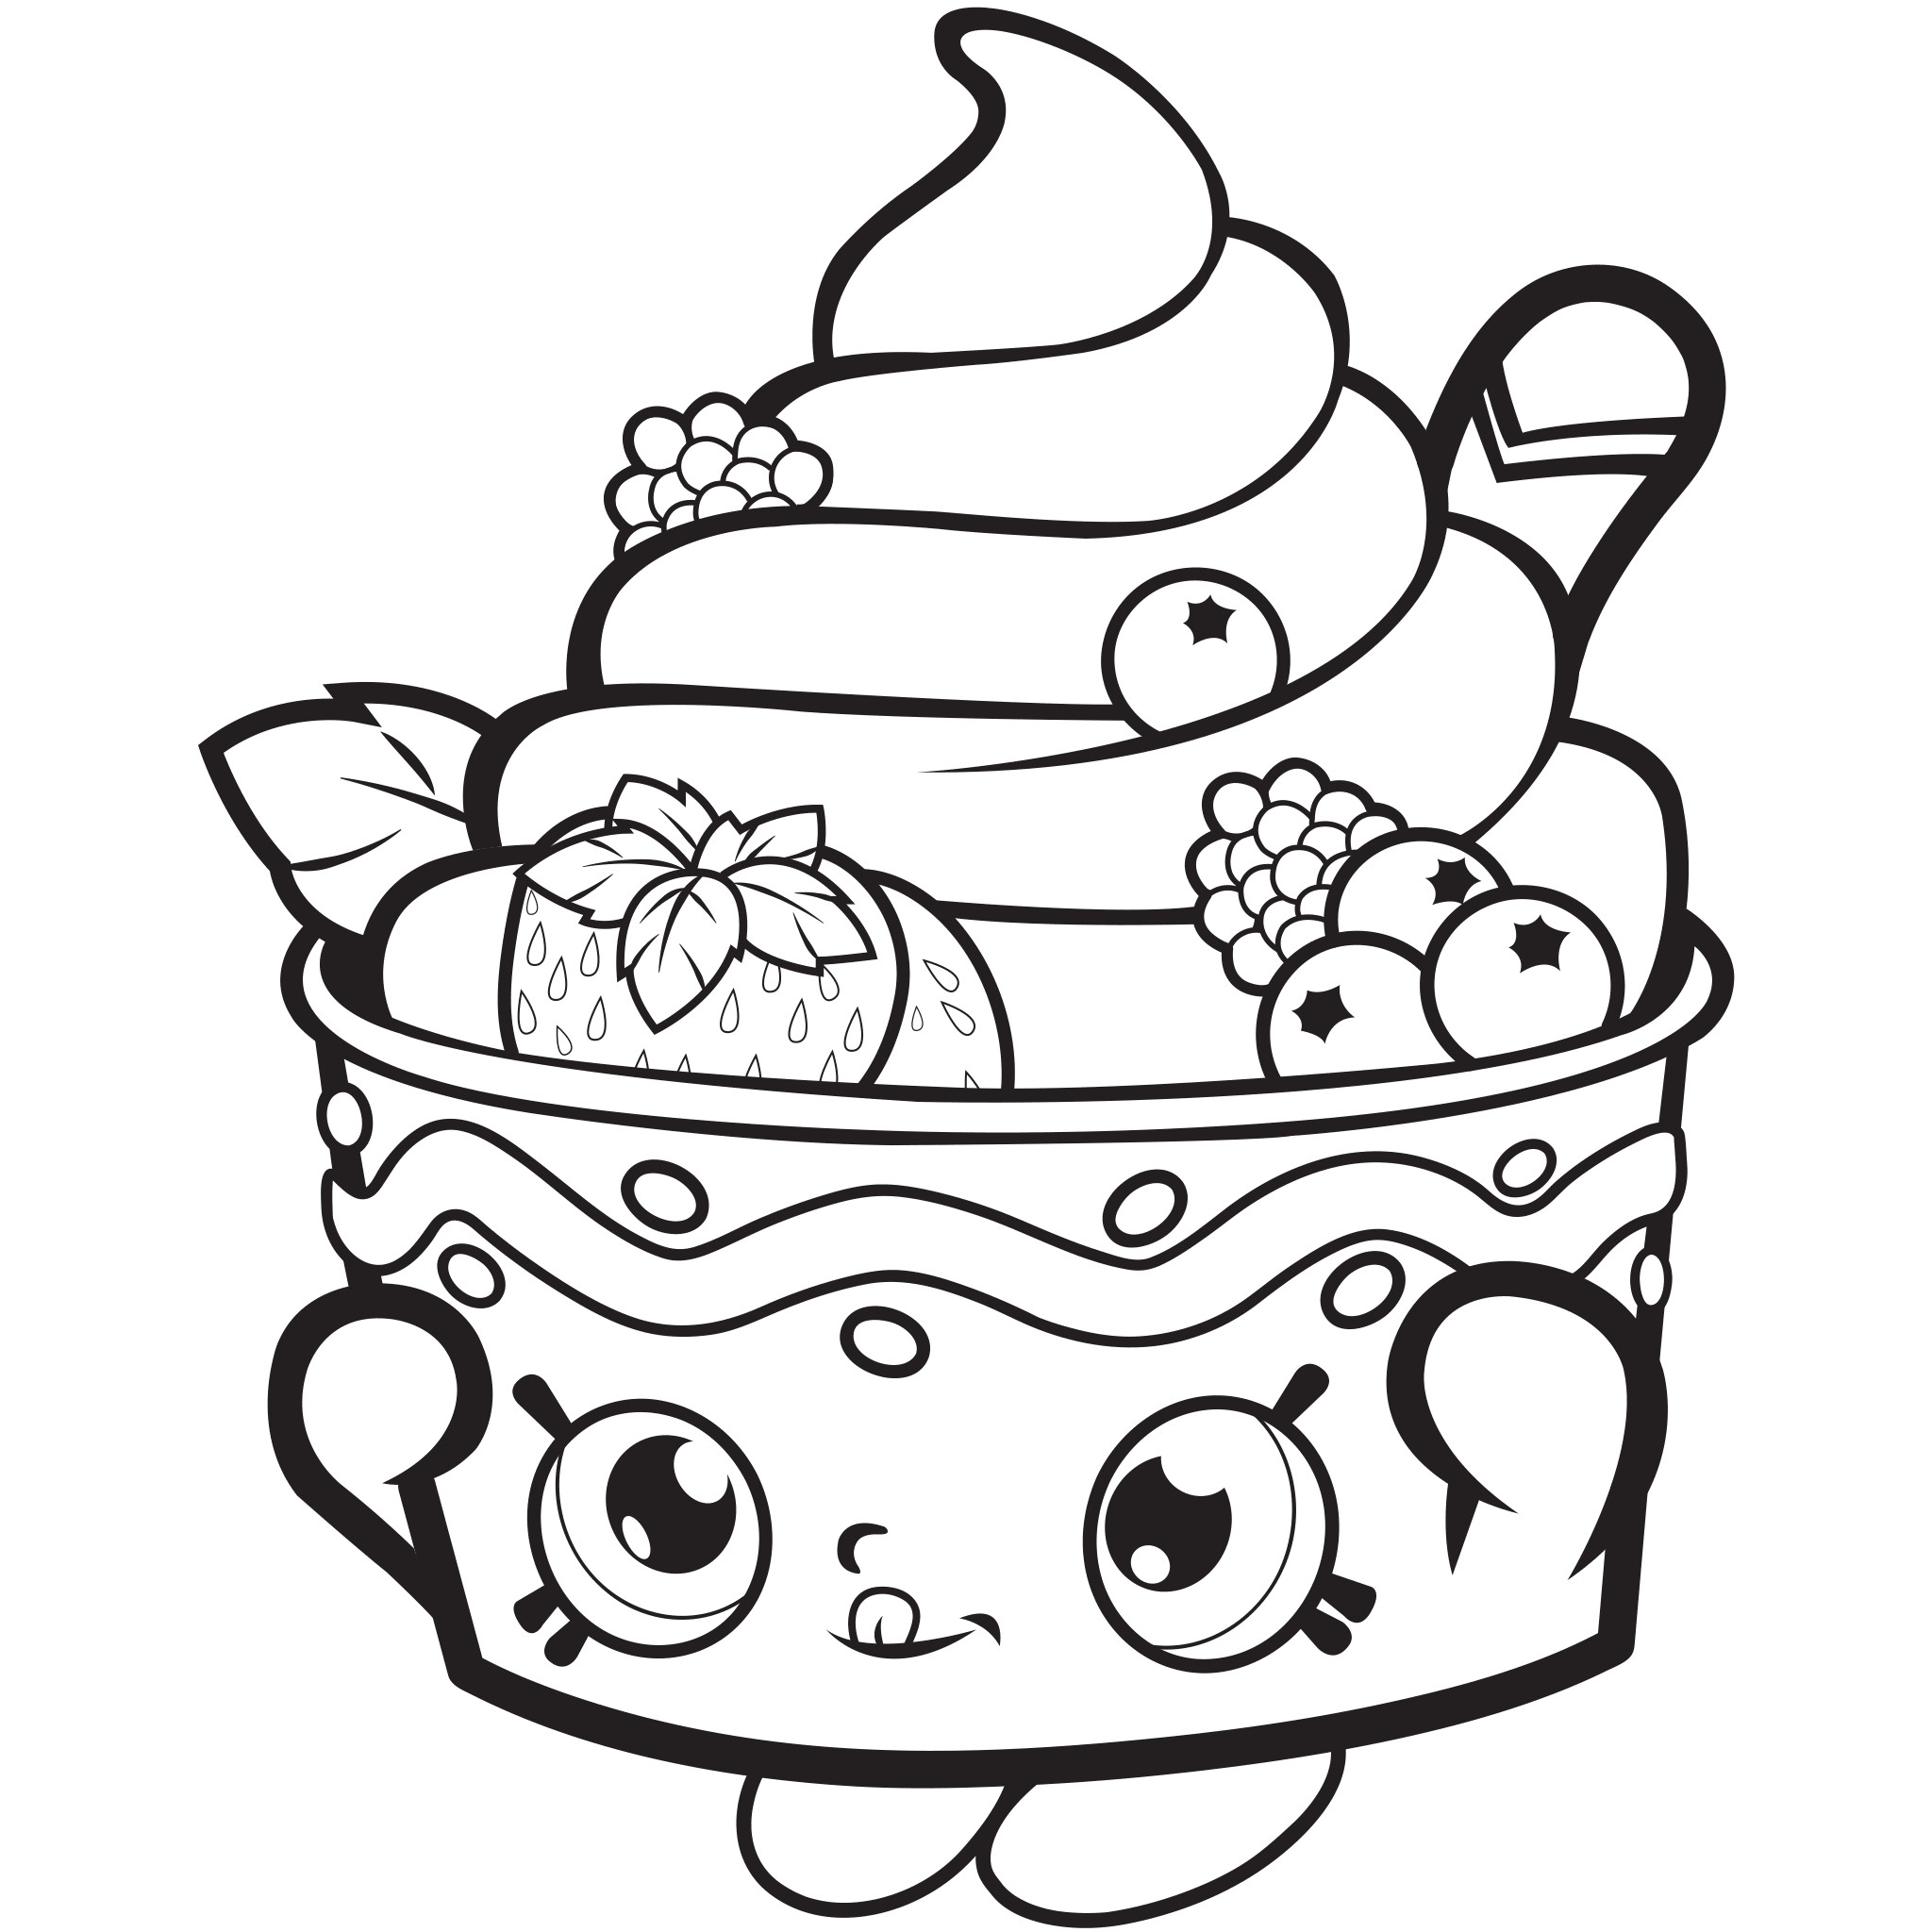 2048x2048 Stunning Shopkins Coloring Pages Cheeky Chocolate